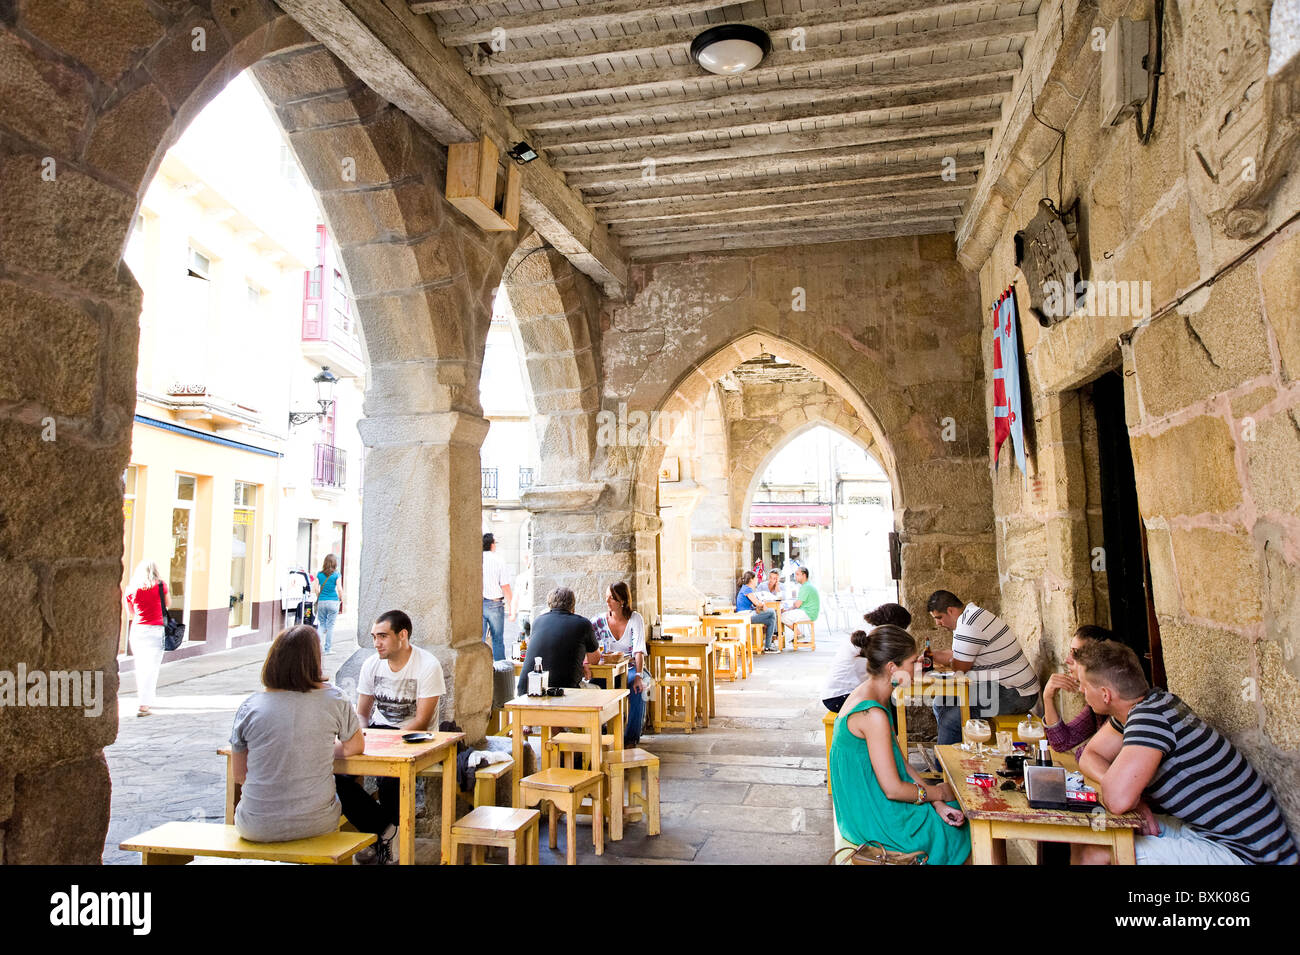 Bar in Noia, Galicia, Spain - Stock Image